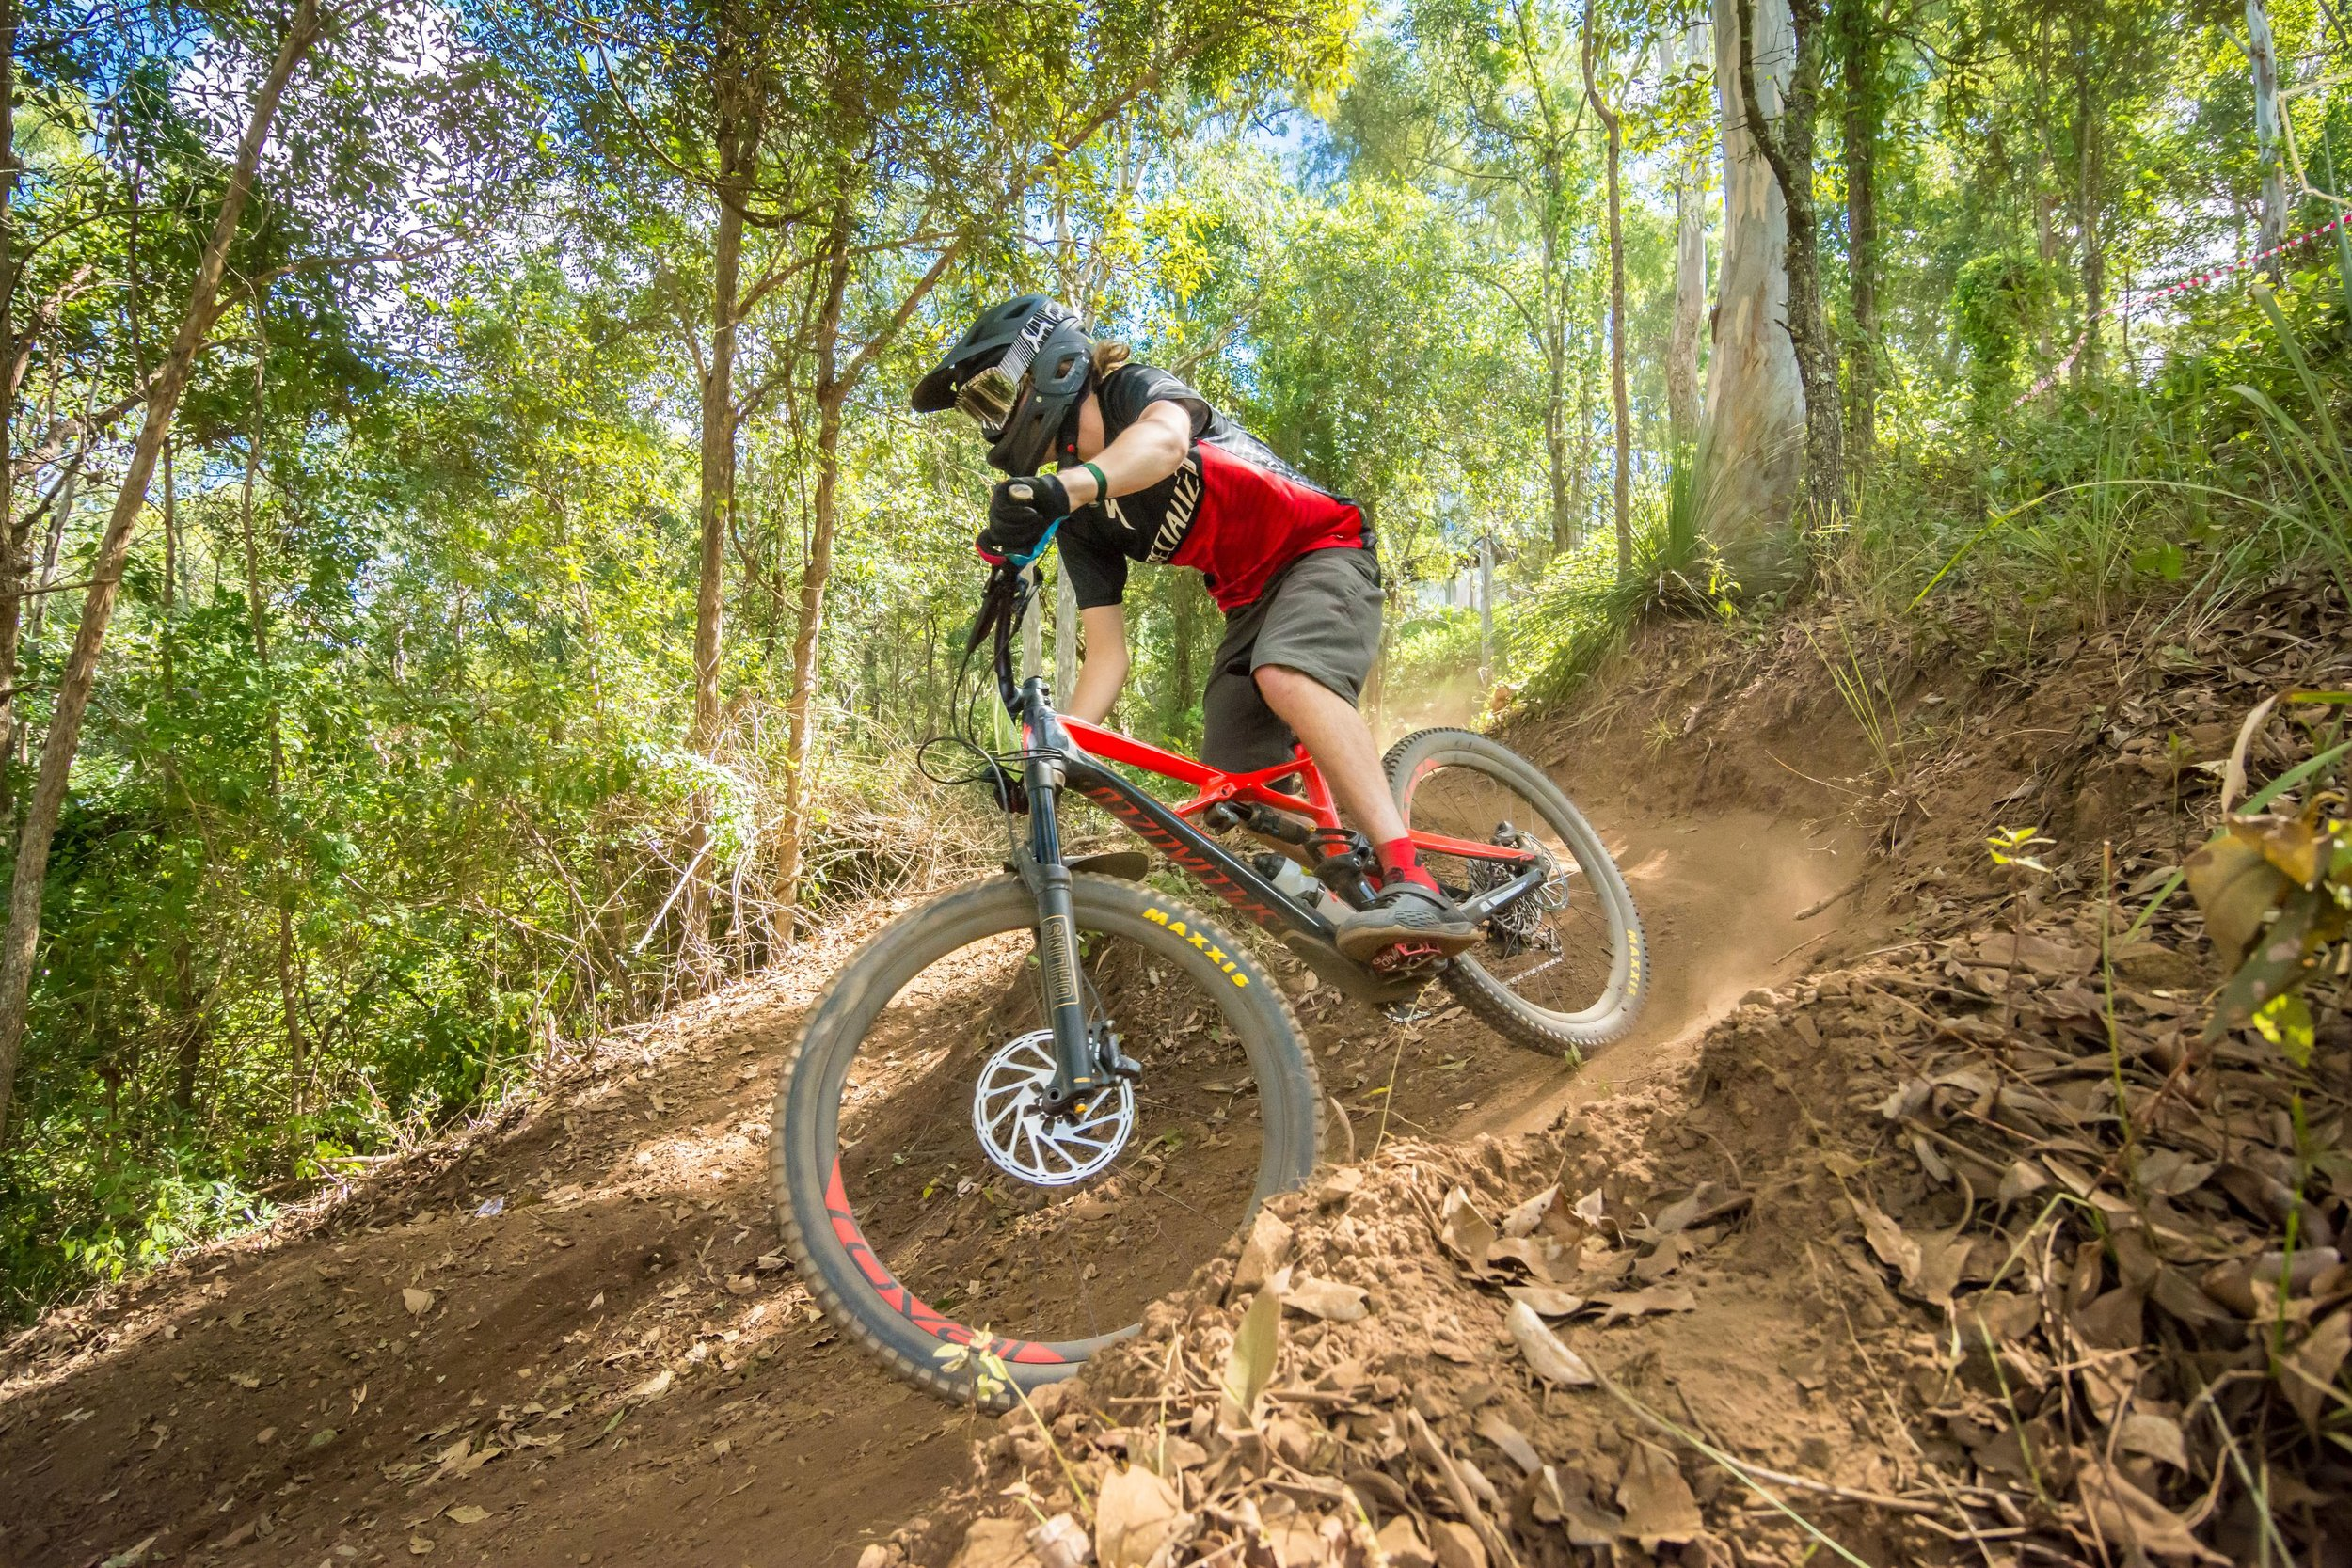 Terry Martin - Sales, Service, Resident MTB Expert, Qualified Coach and BG Fitter